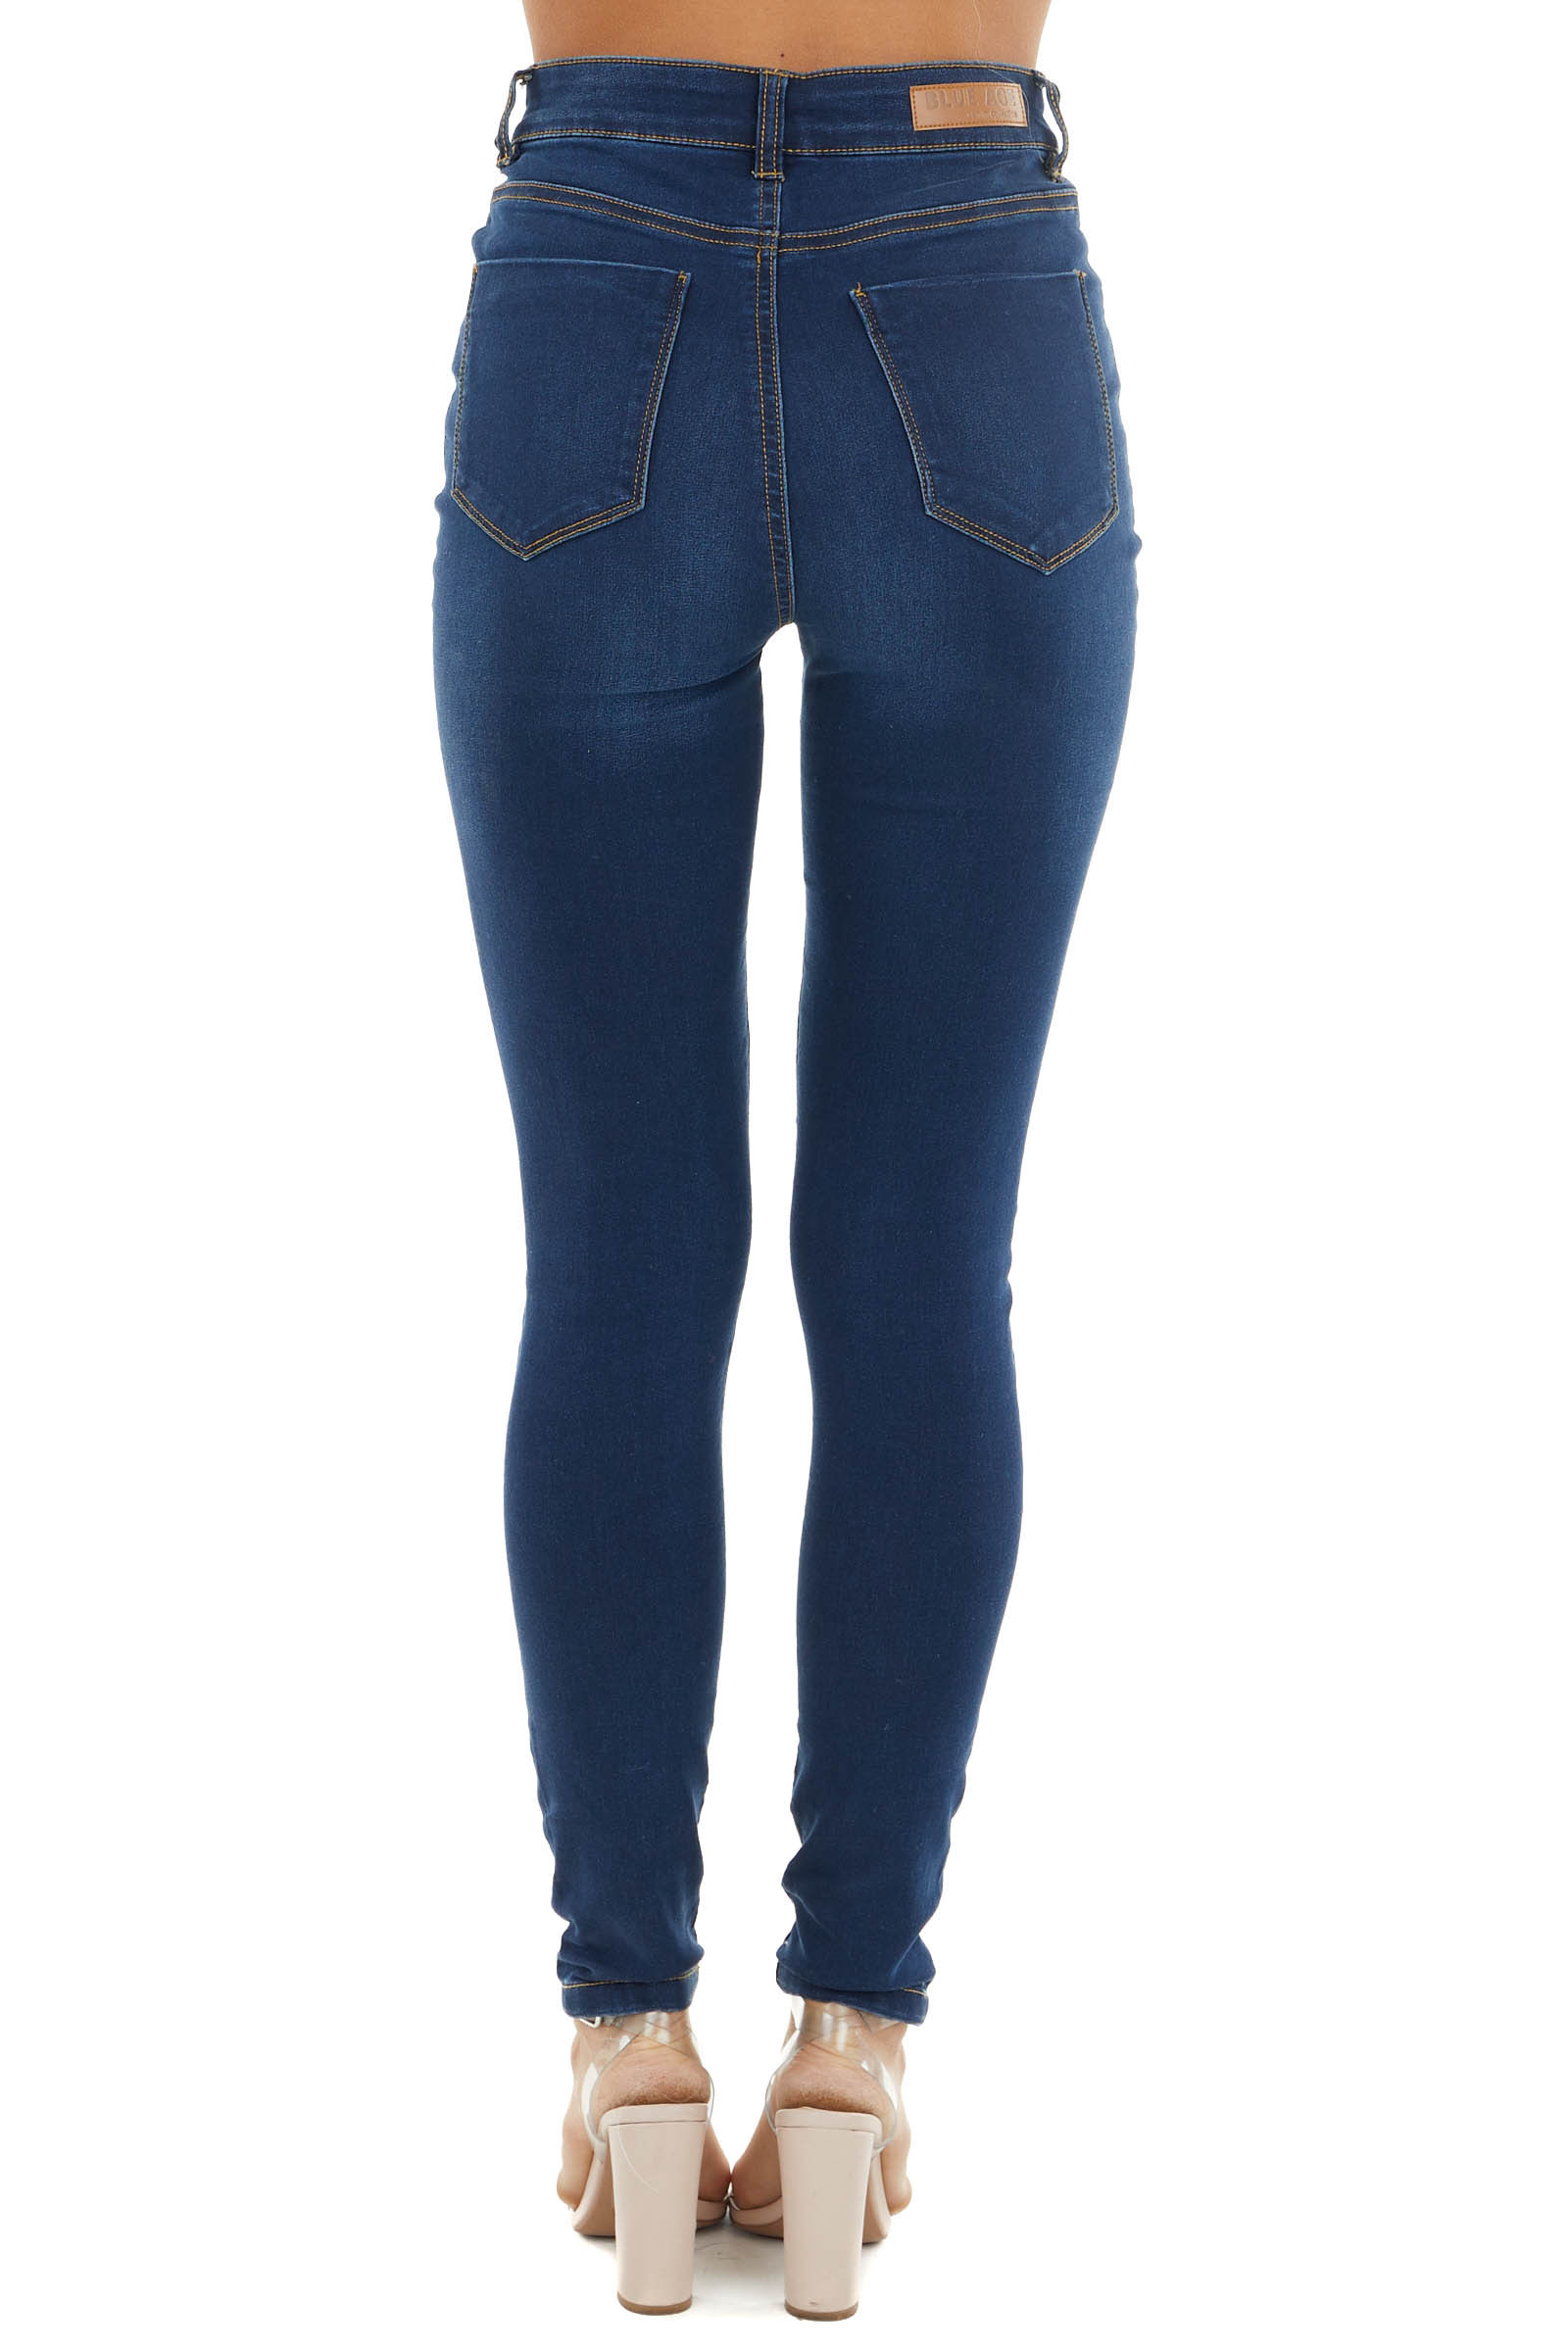 Dark Wash High Rise Denim Skinny Jeans with Knee Slits